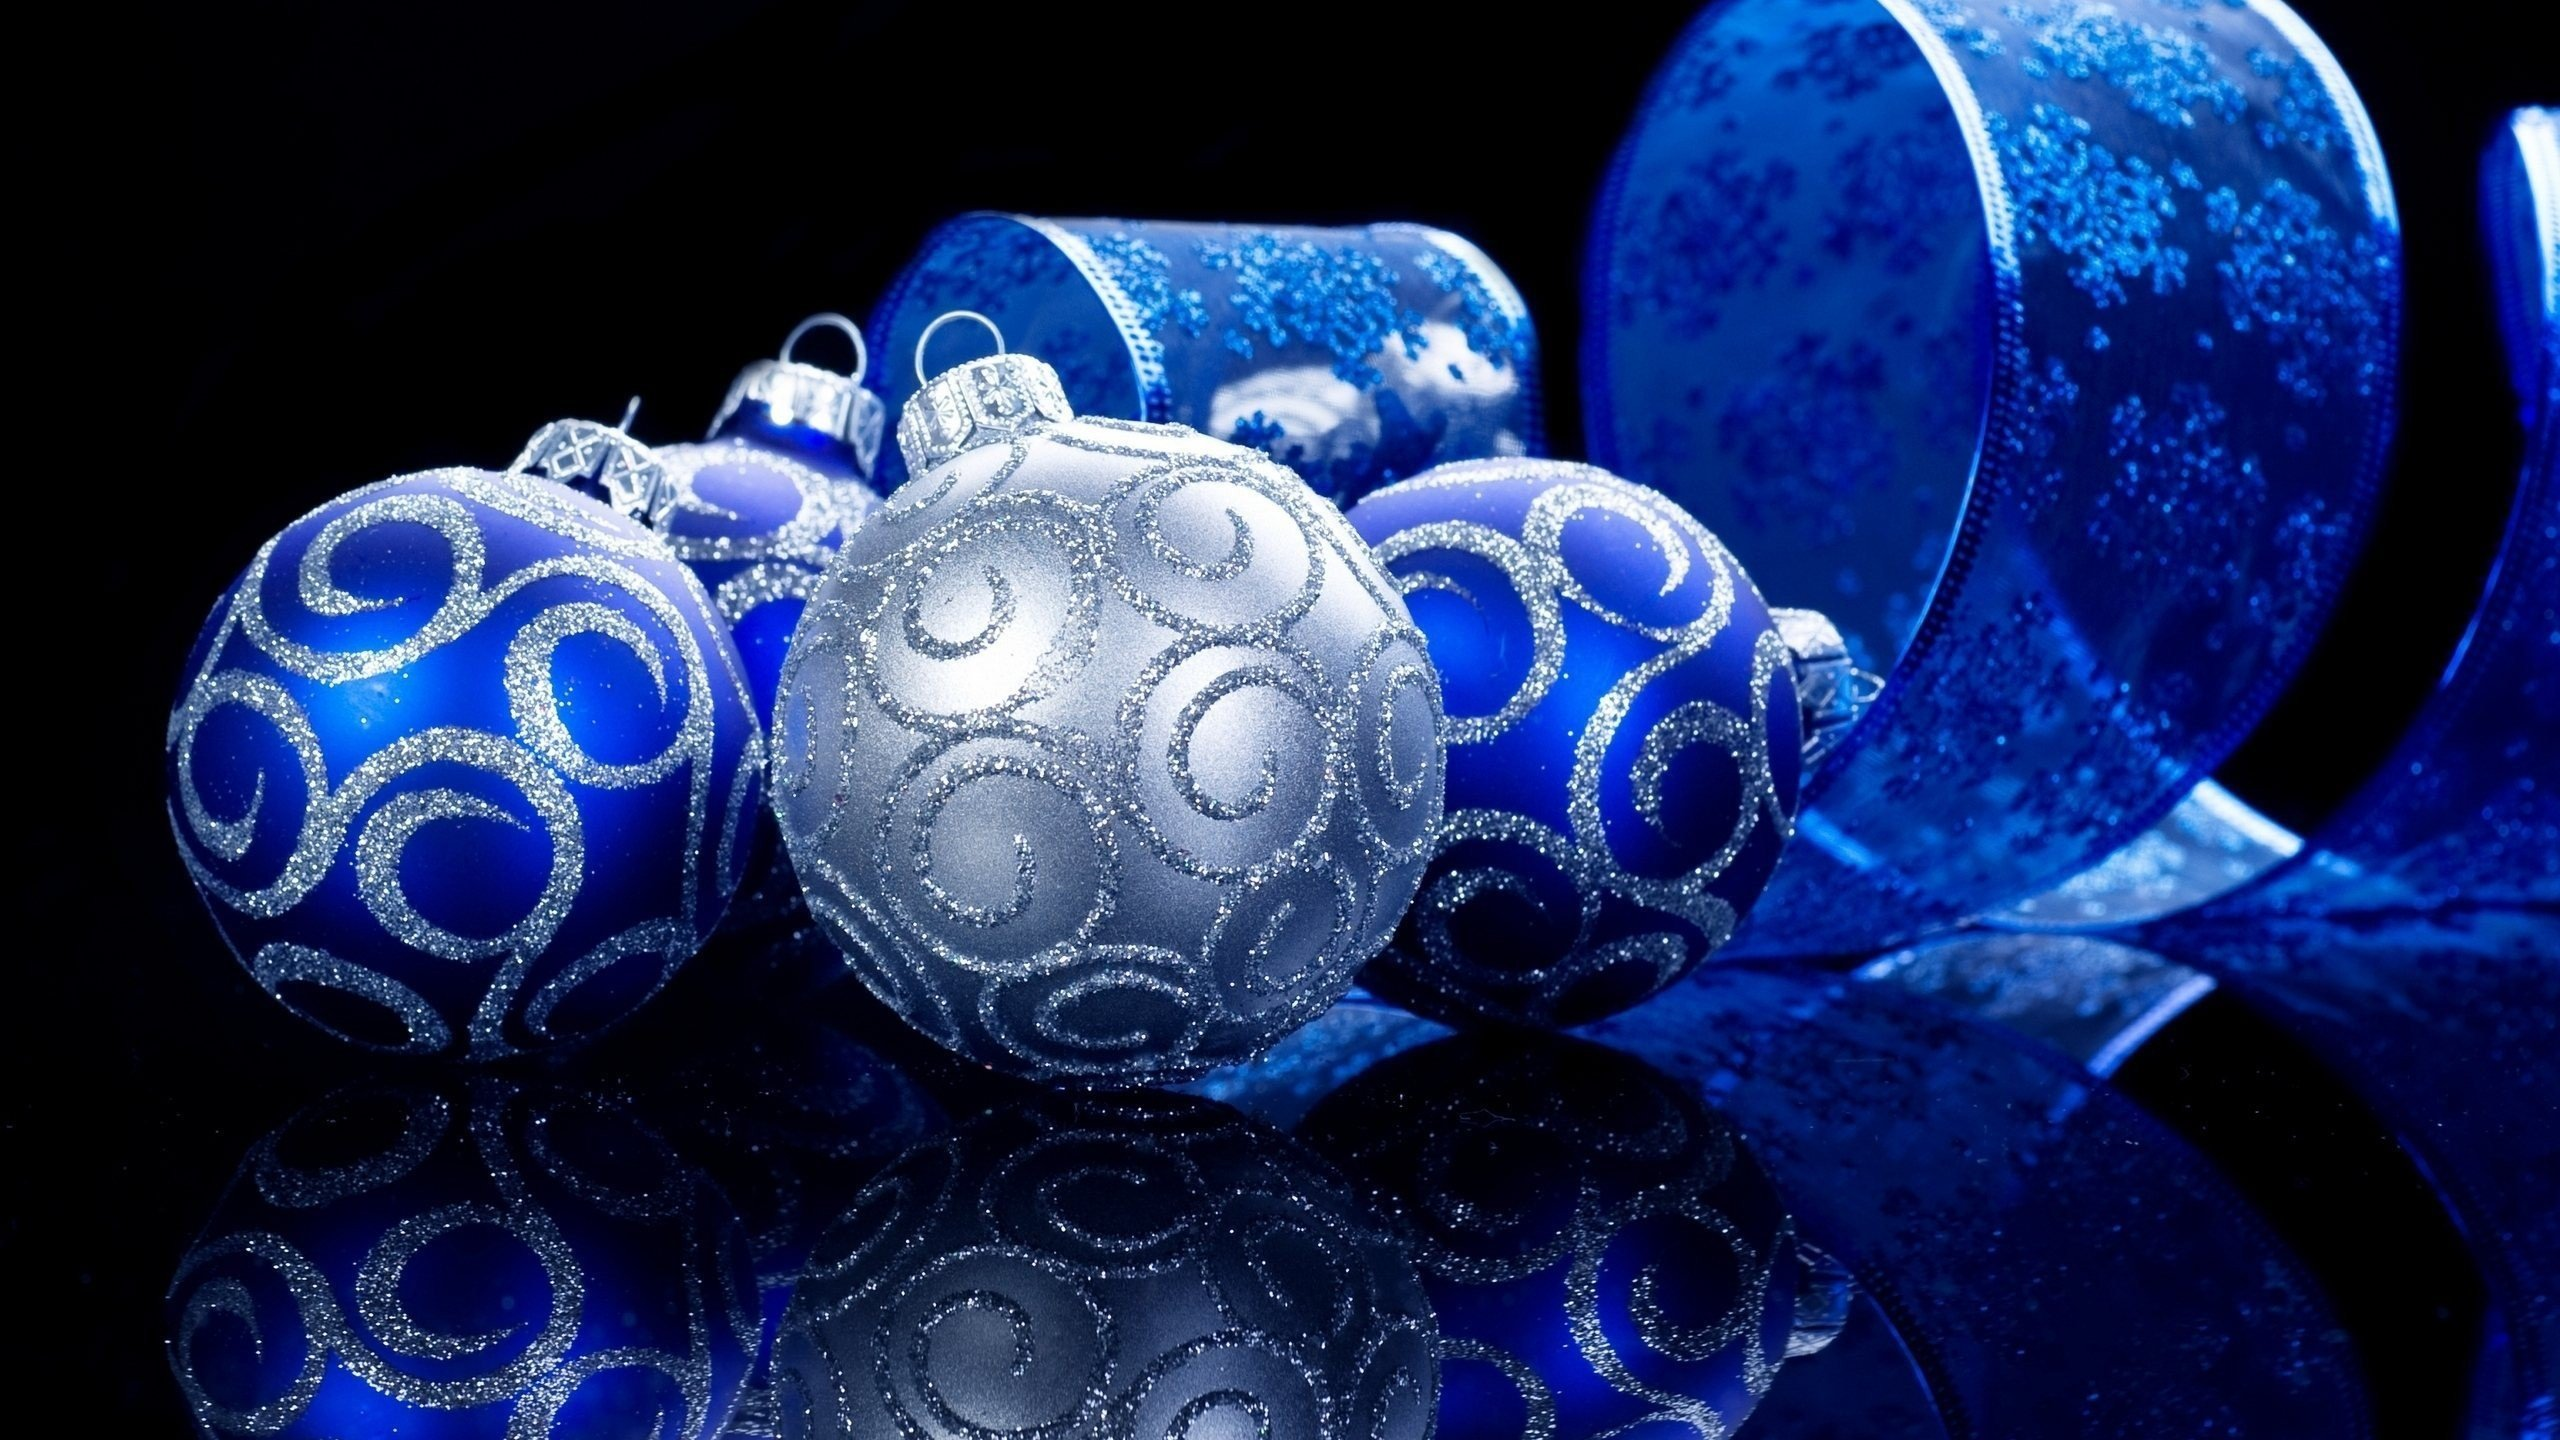 Blue Christmas Balls Wallpapers High Quality